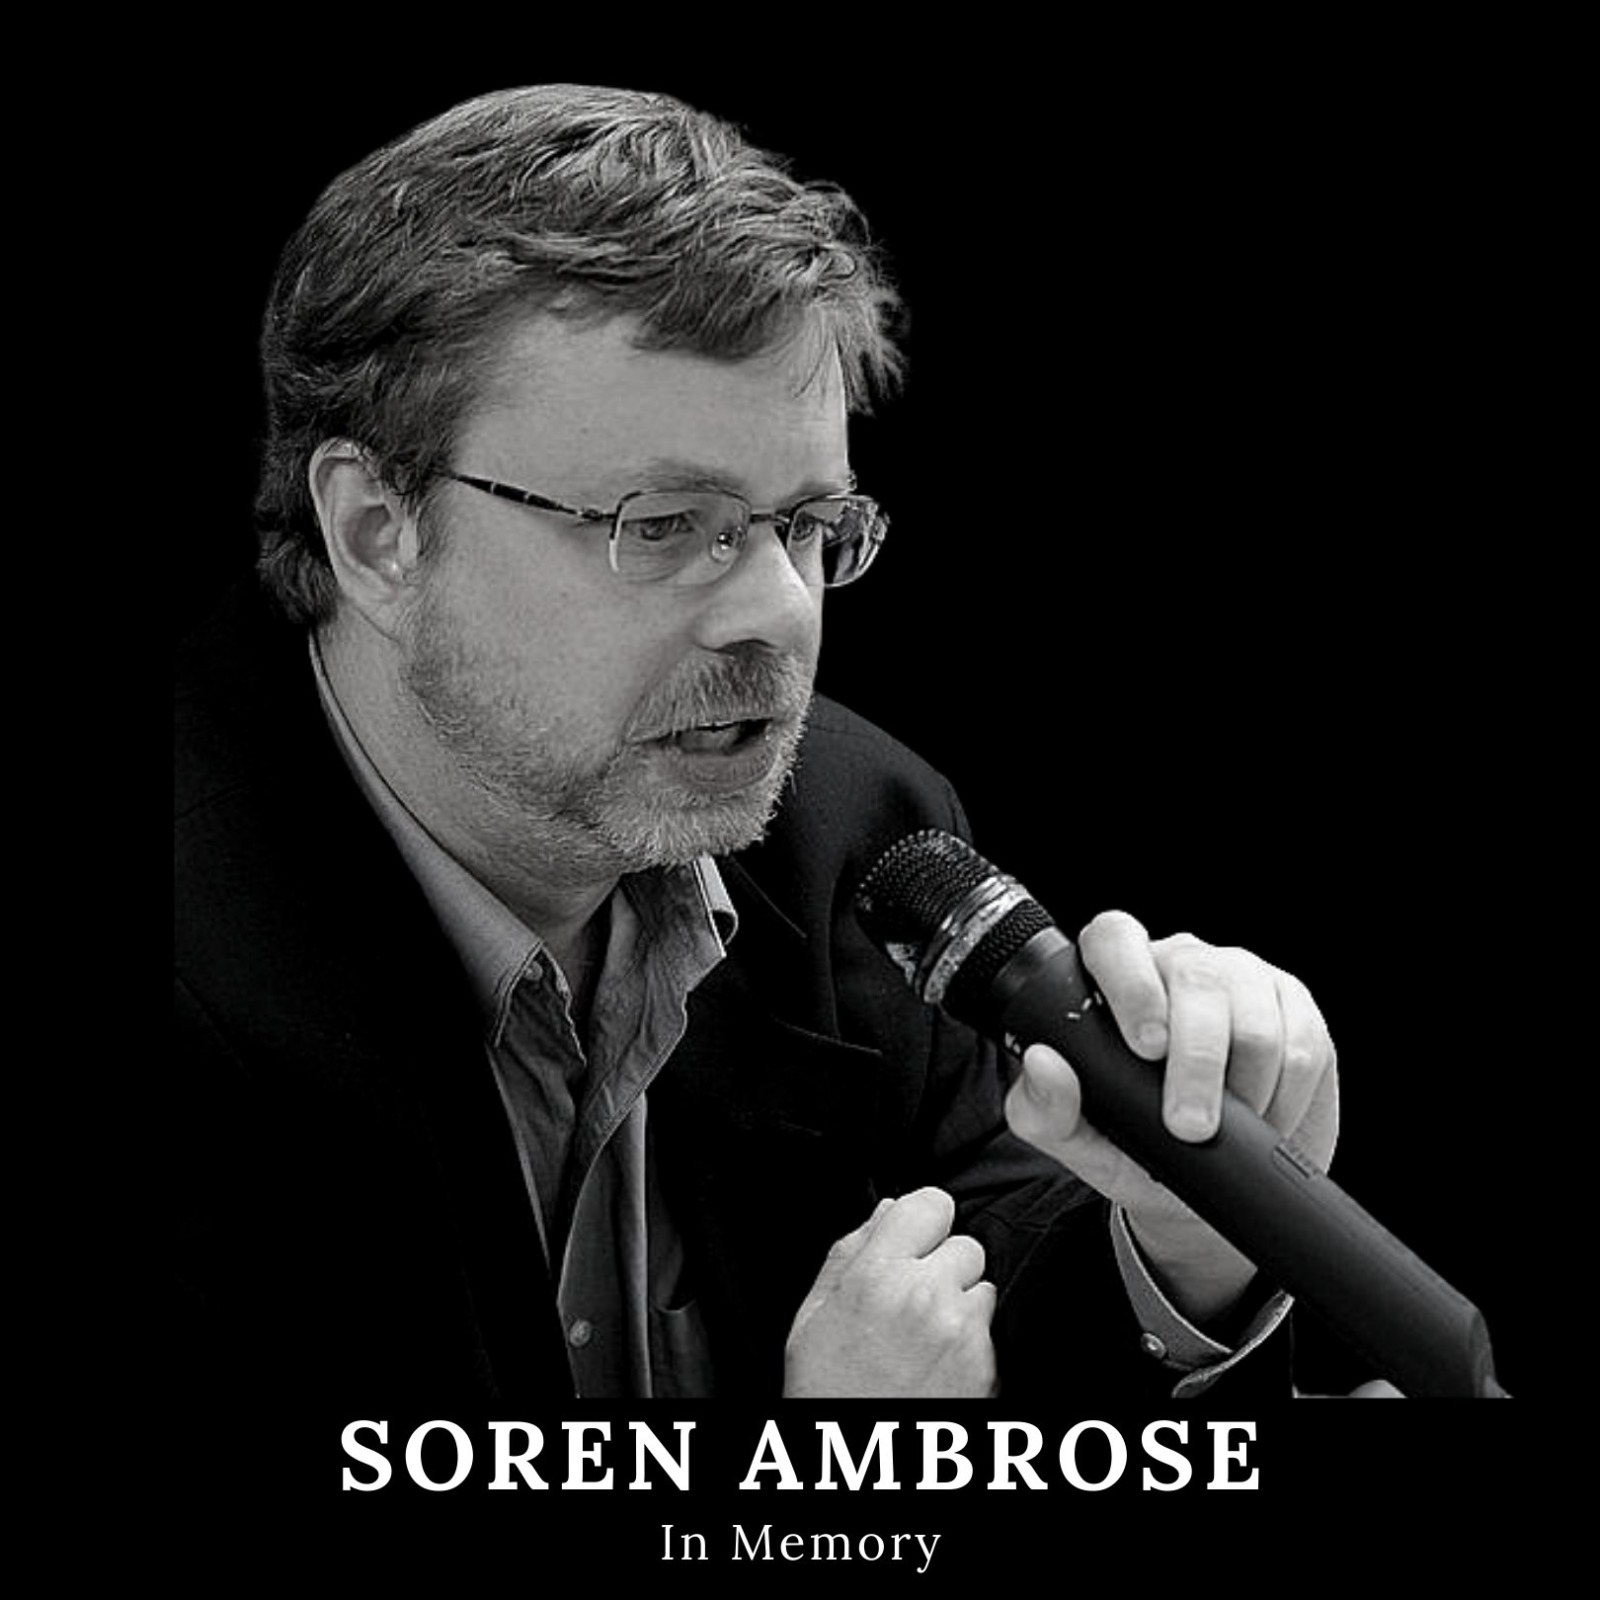 """A black and white image of Soren Ambrose with a microphone in his hand, calling for a fairer and more just world. Underneath the photo are the words """"Soren Ambrose: In Memory"""""""